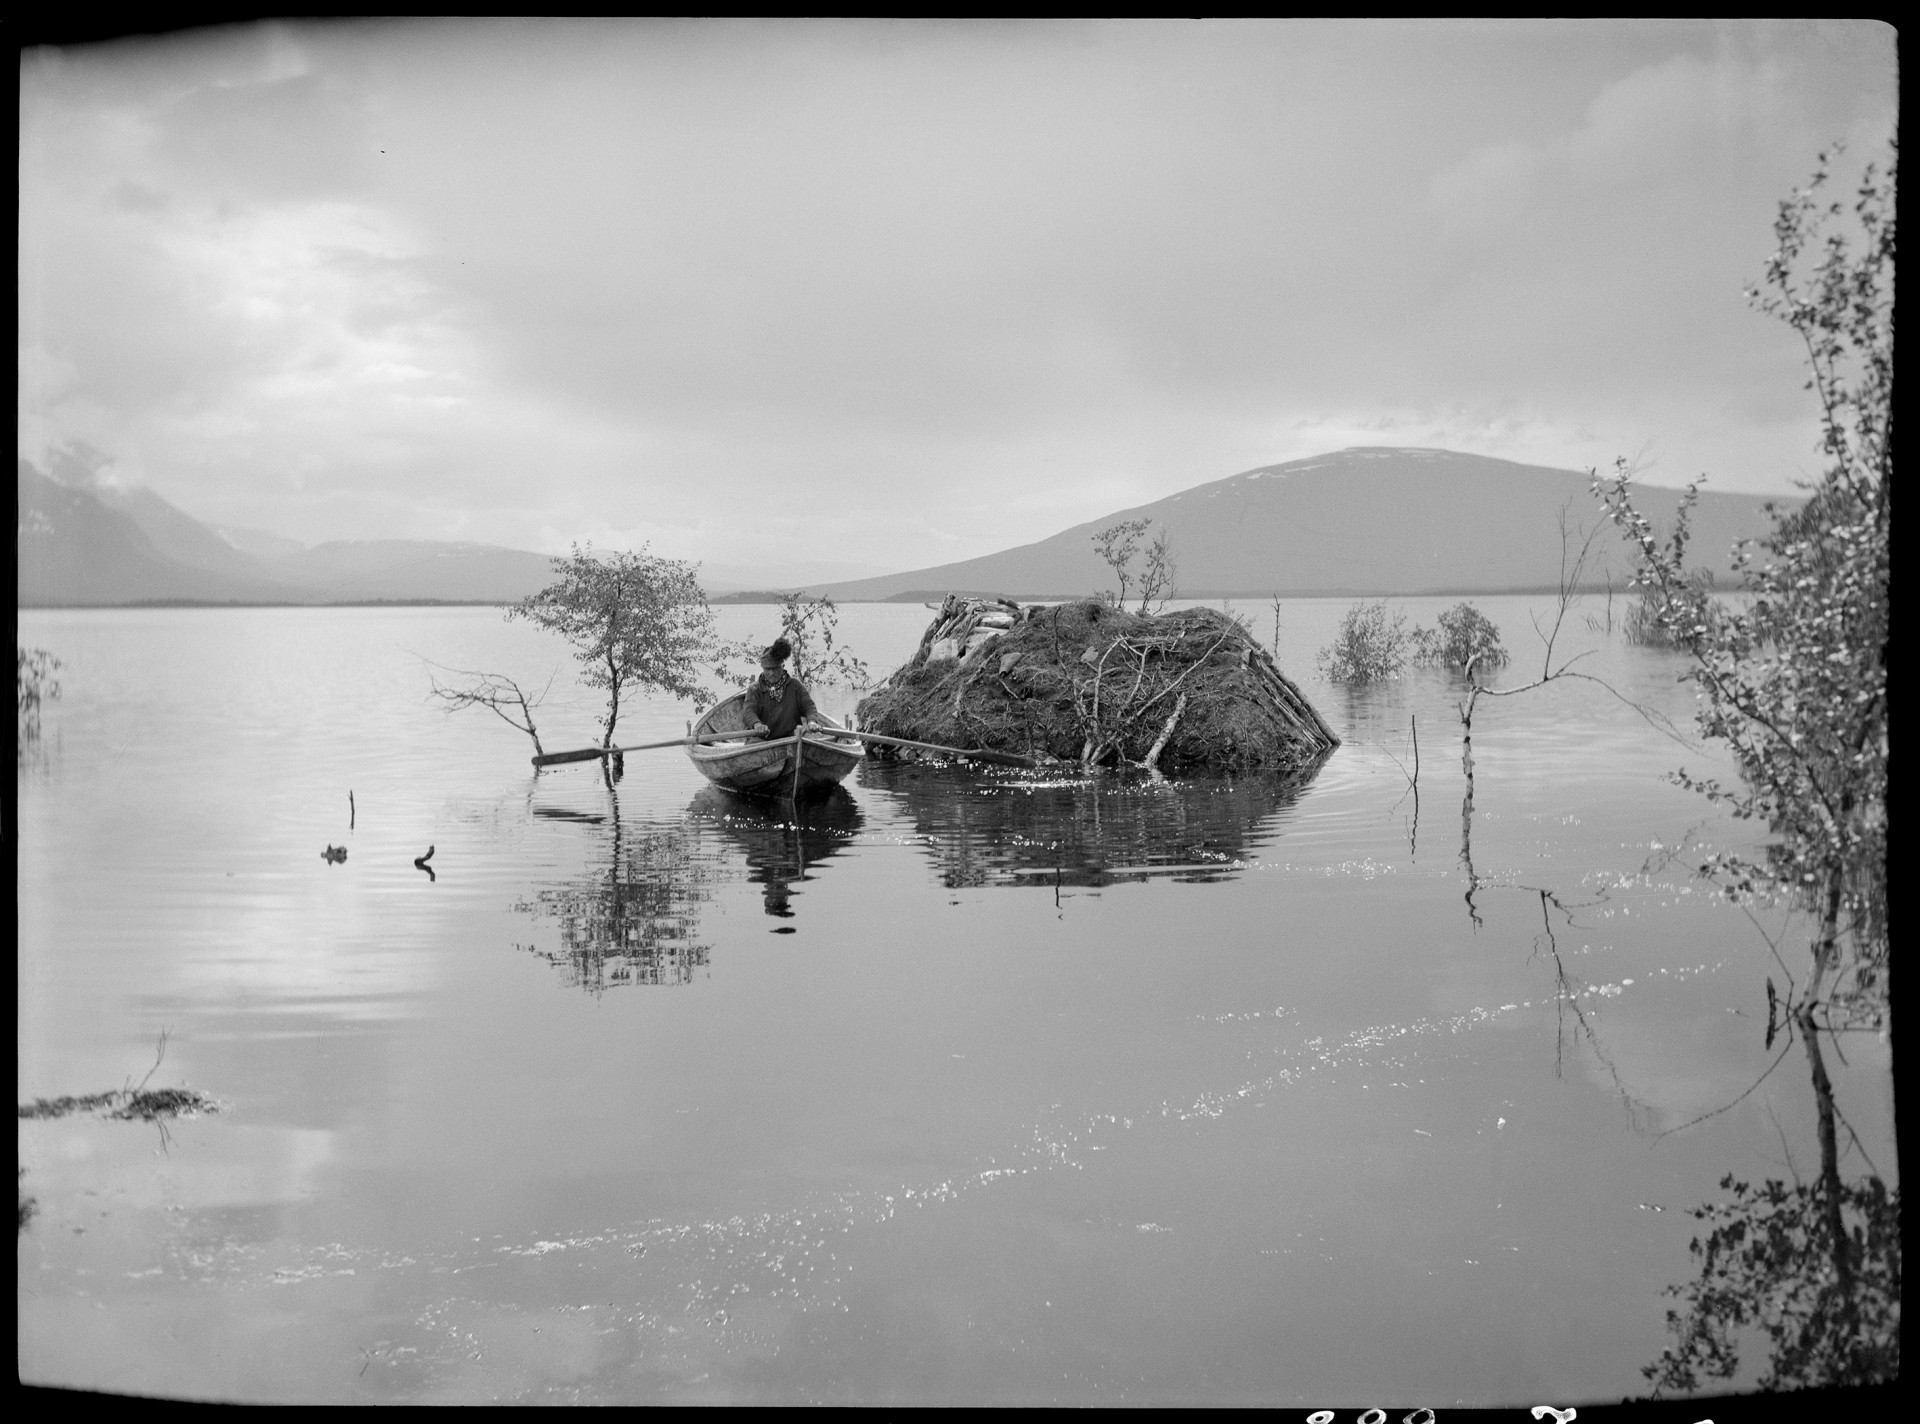 Flooded settlement, Ritsemjokk, Sörkaitums herding cooperative. 1939. Photo: Ernst Manker/Nordiska museet